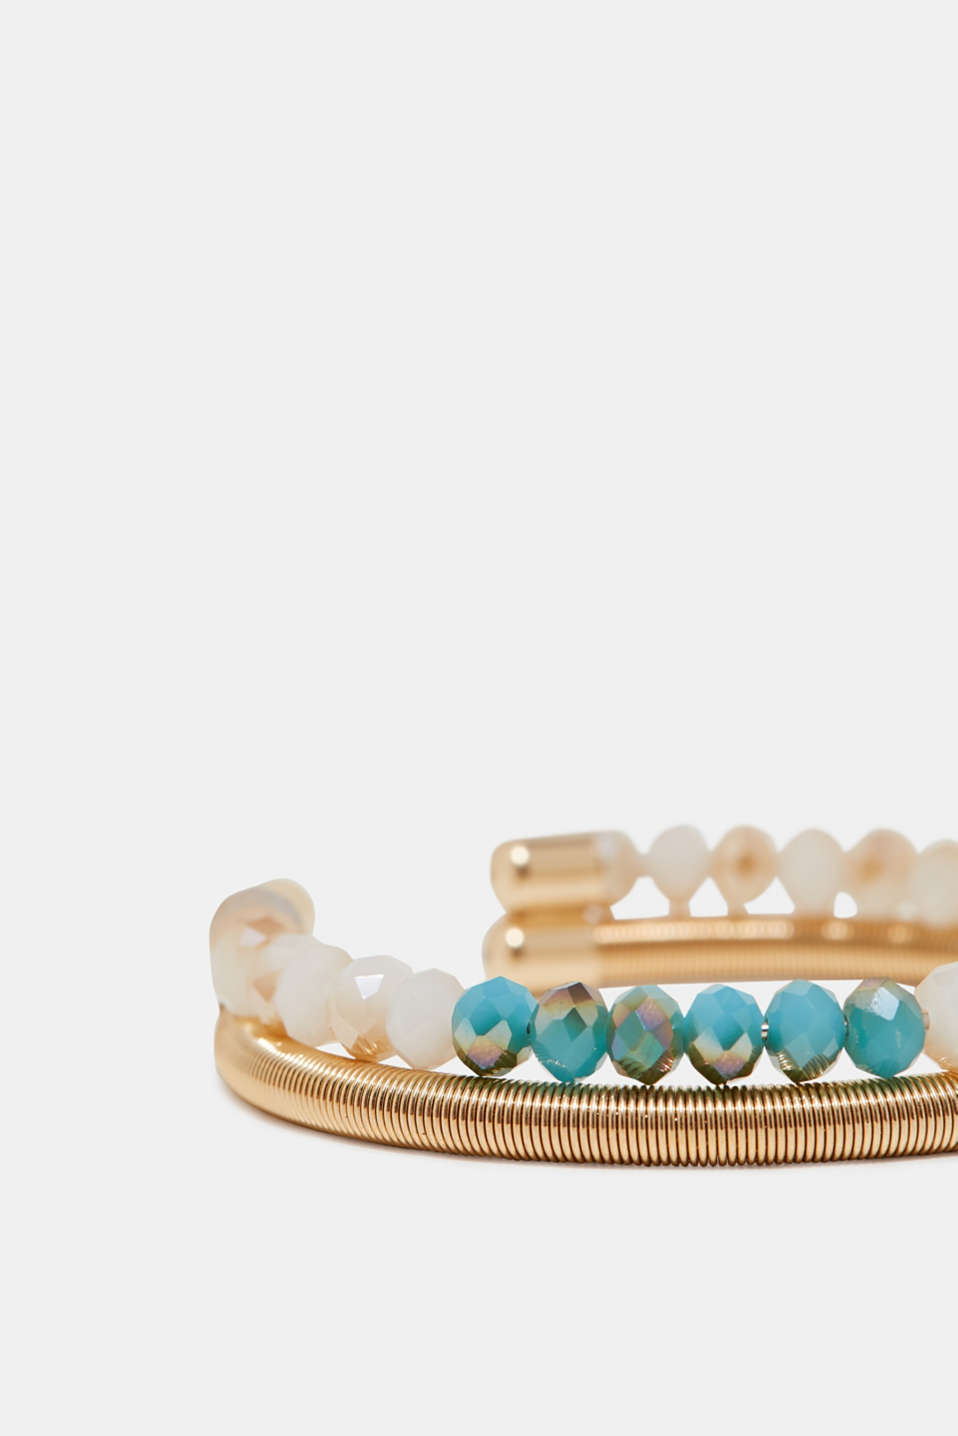 Two-row bangle with gemstones